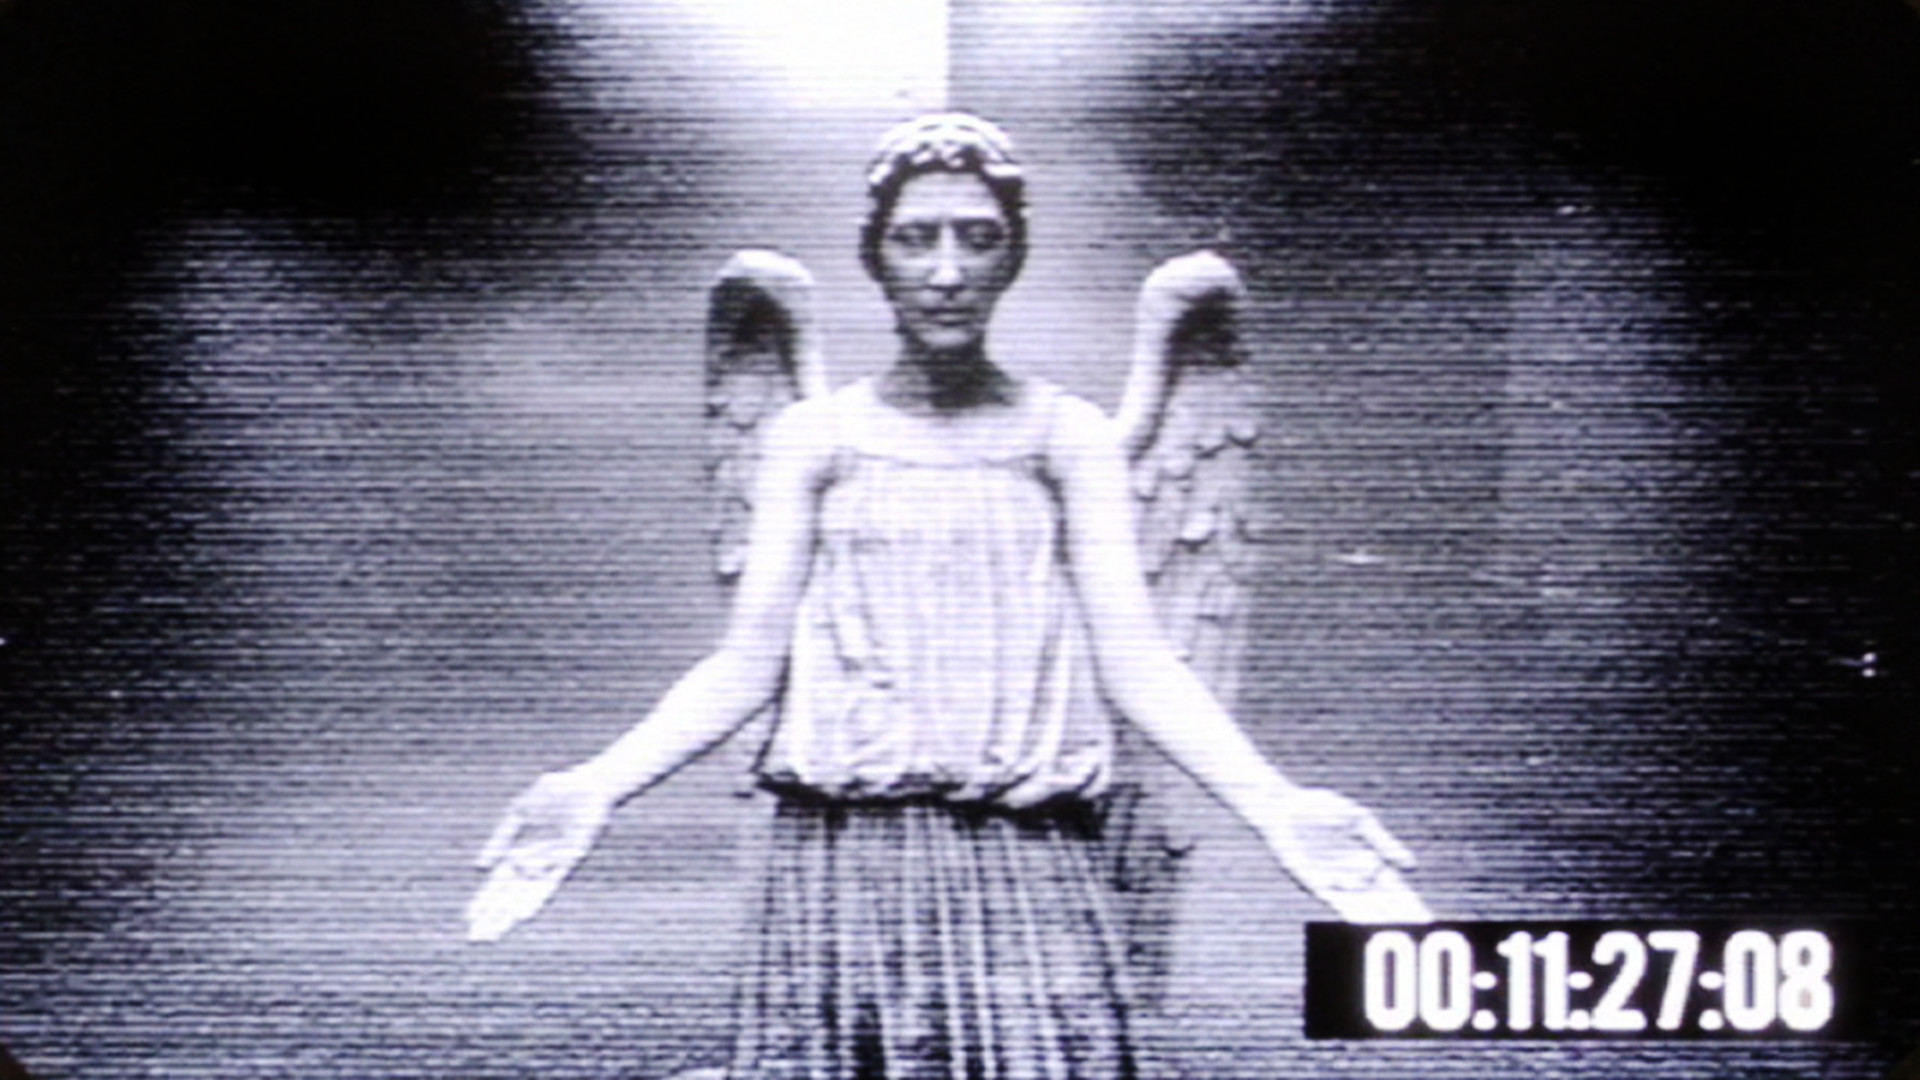 1920x1080 Weeping Angels wallpapers. Set it to change every few seconds for some fun.